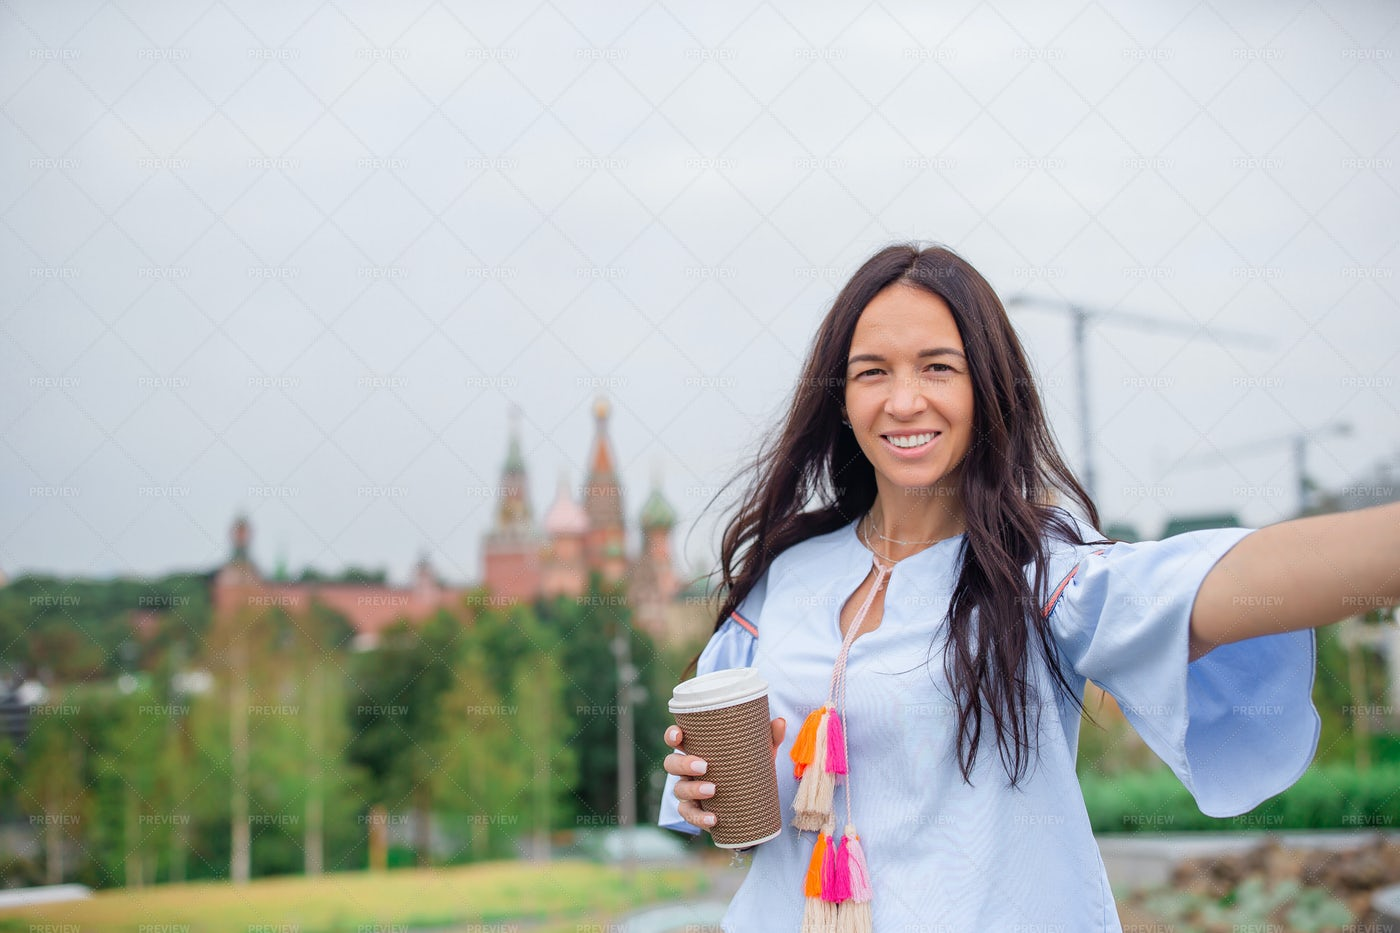 Drinking Coffee In The Outdoors: Stock Photos